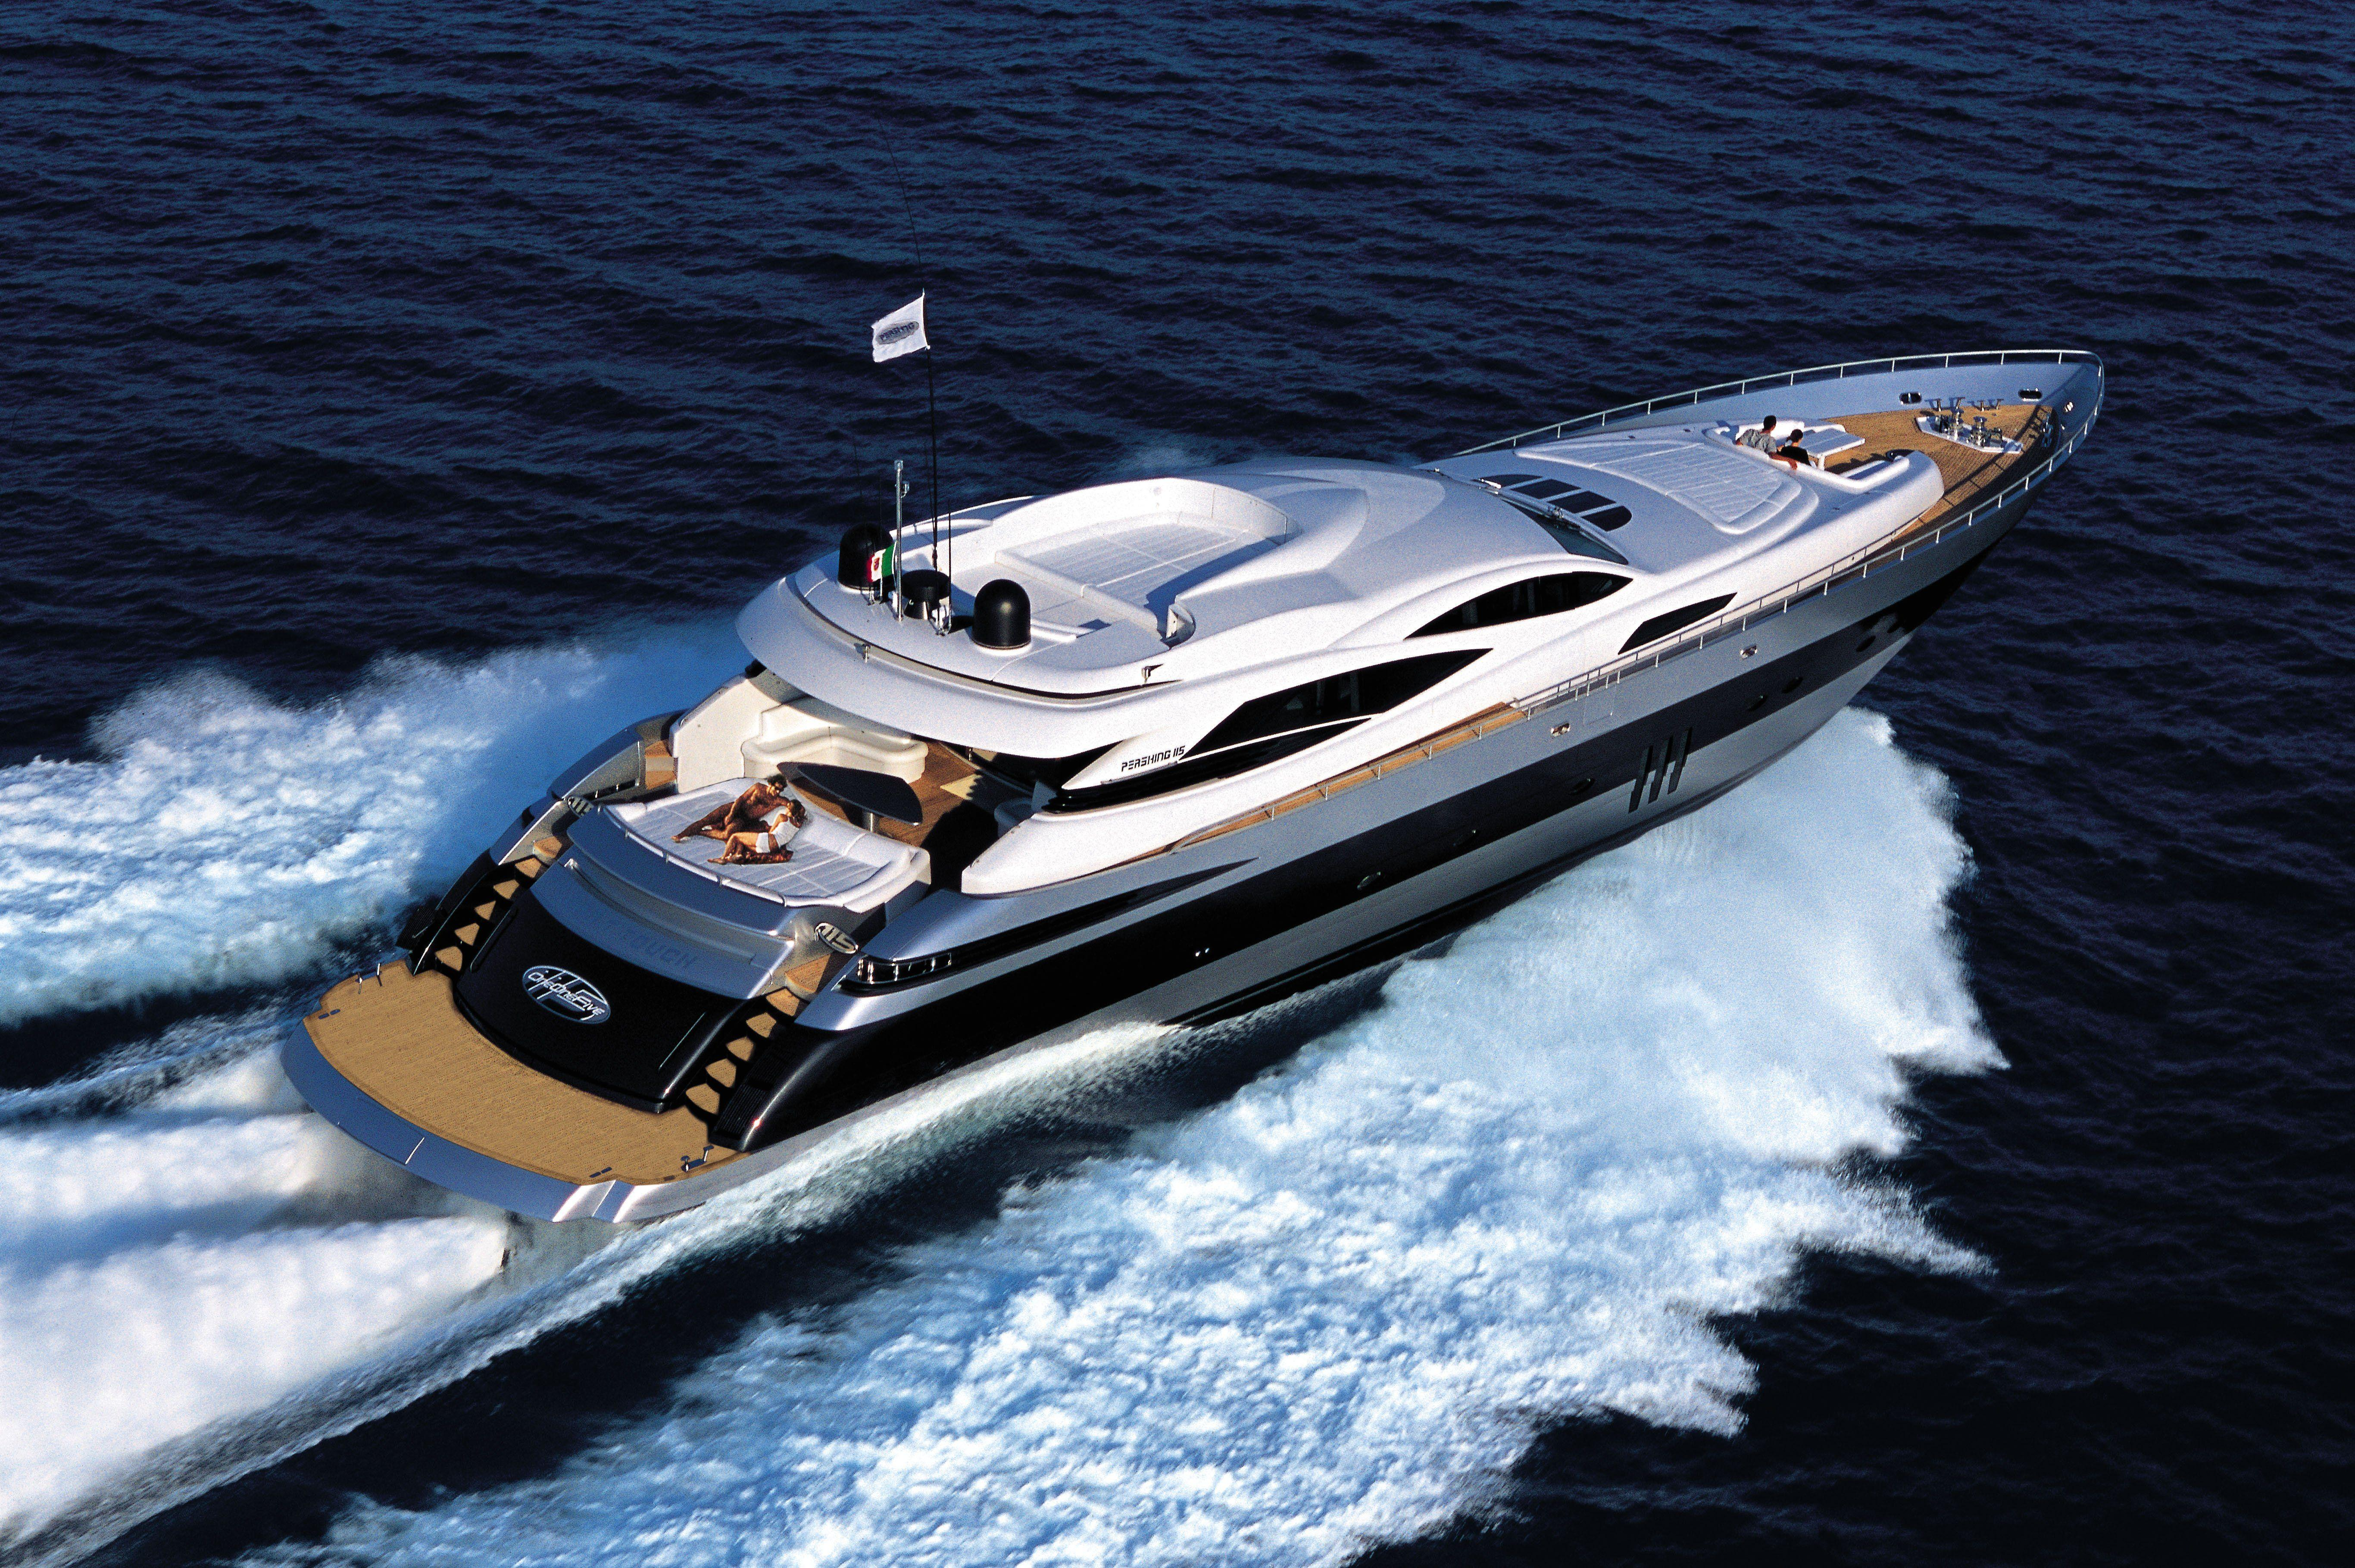 lpapers Wide wallpapers e HD wallpapers Yachts wallpapers